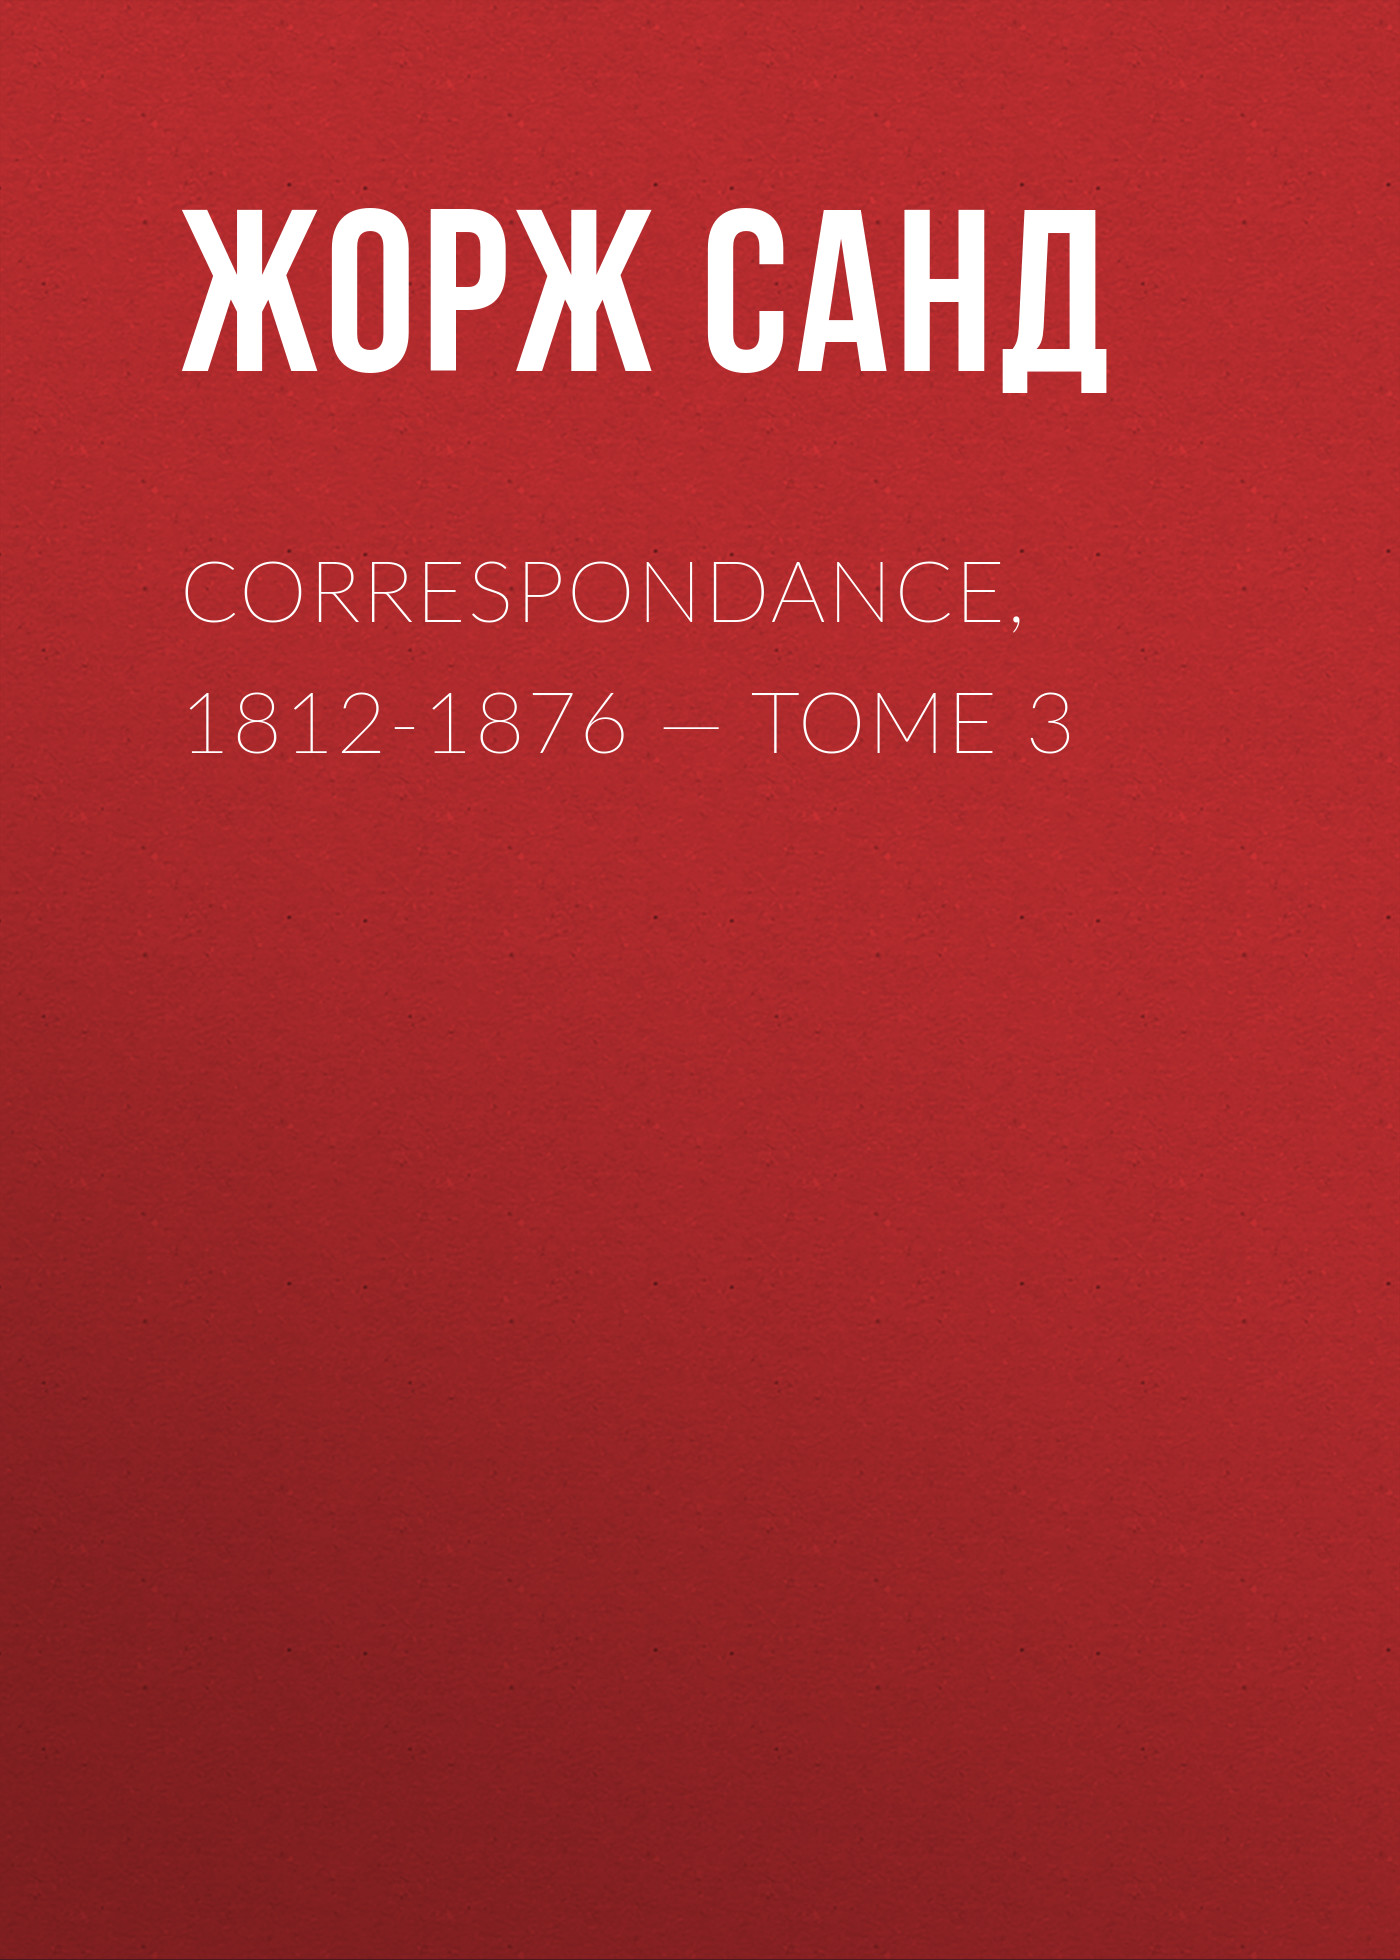 correspondance 1812 1876 tome 3